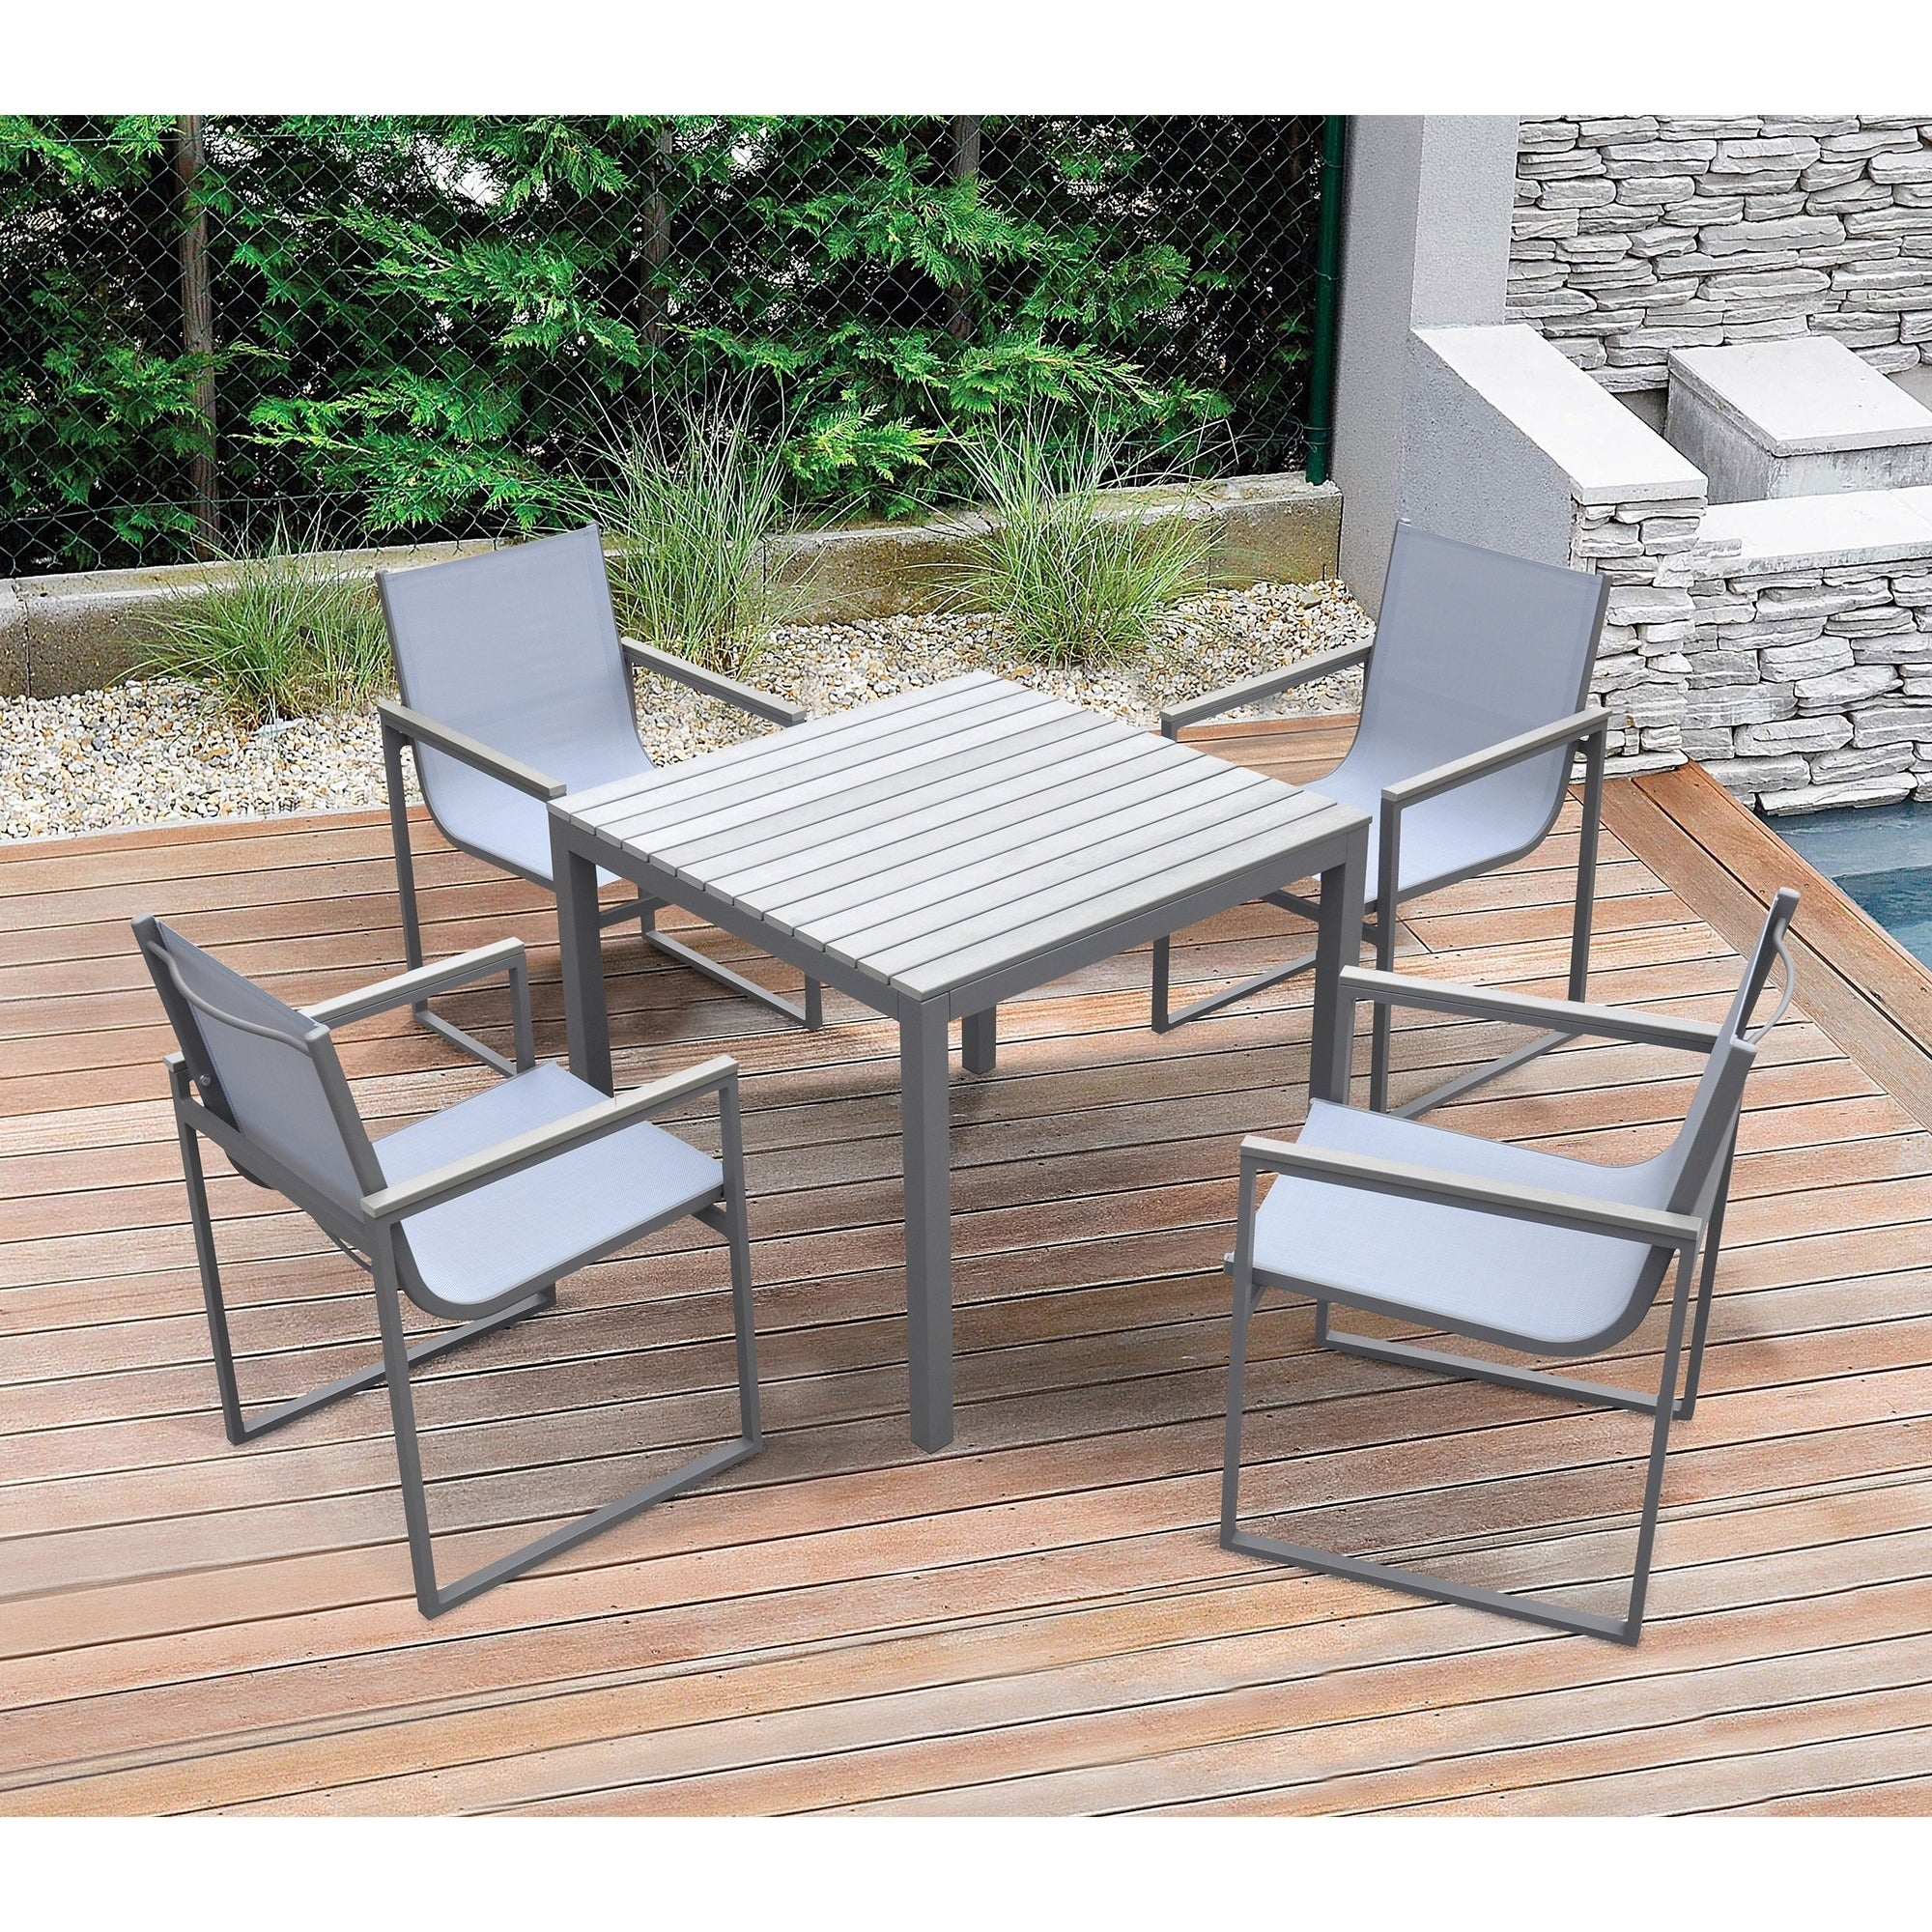 Armen living bistro dining set grey powder coated finish table with 4 chairs